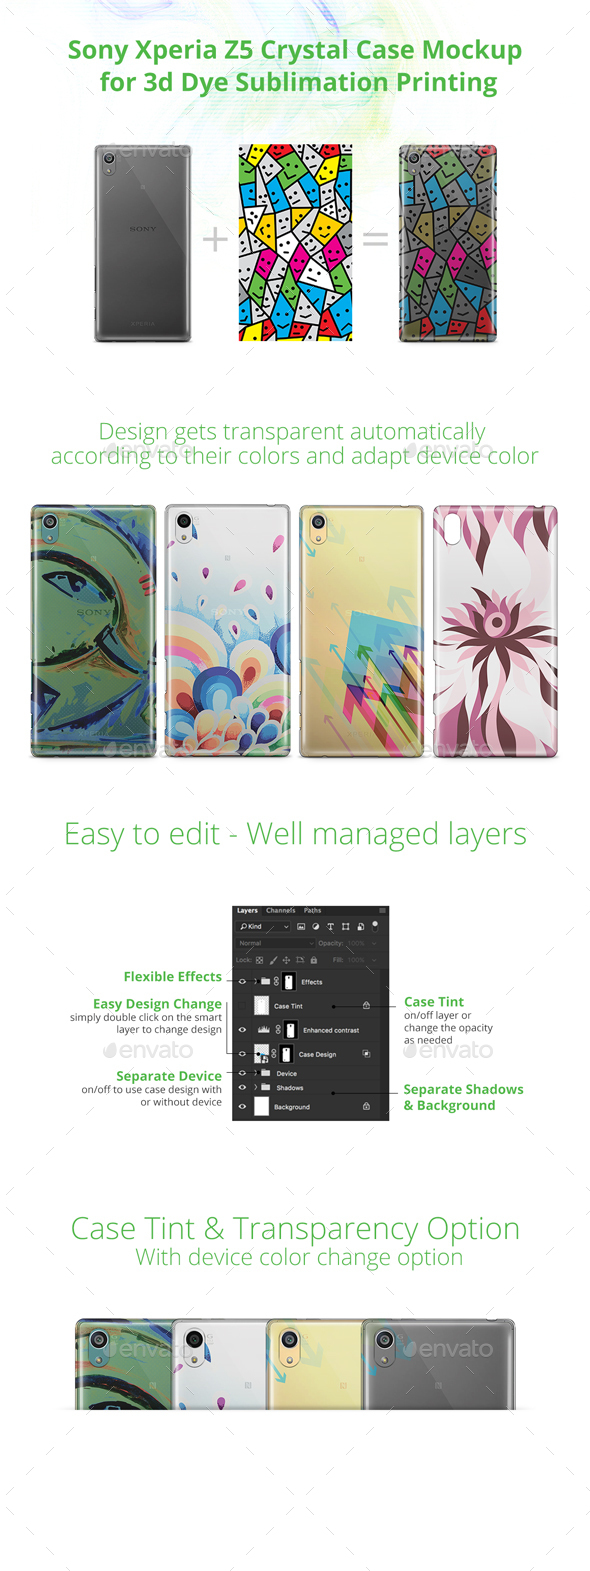 Xperia Z5 Crystal Case Mockup for 3d Dye Sublimation Printing- Back View - Mobile Displays